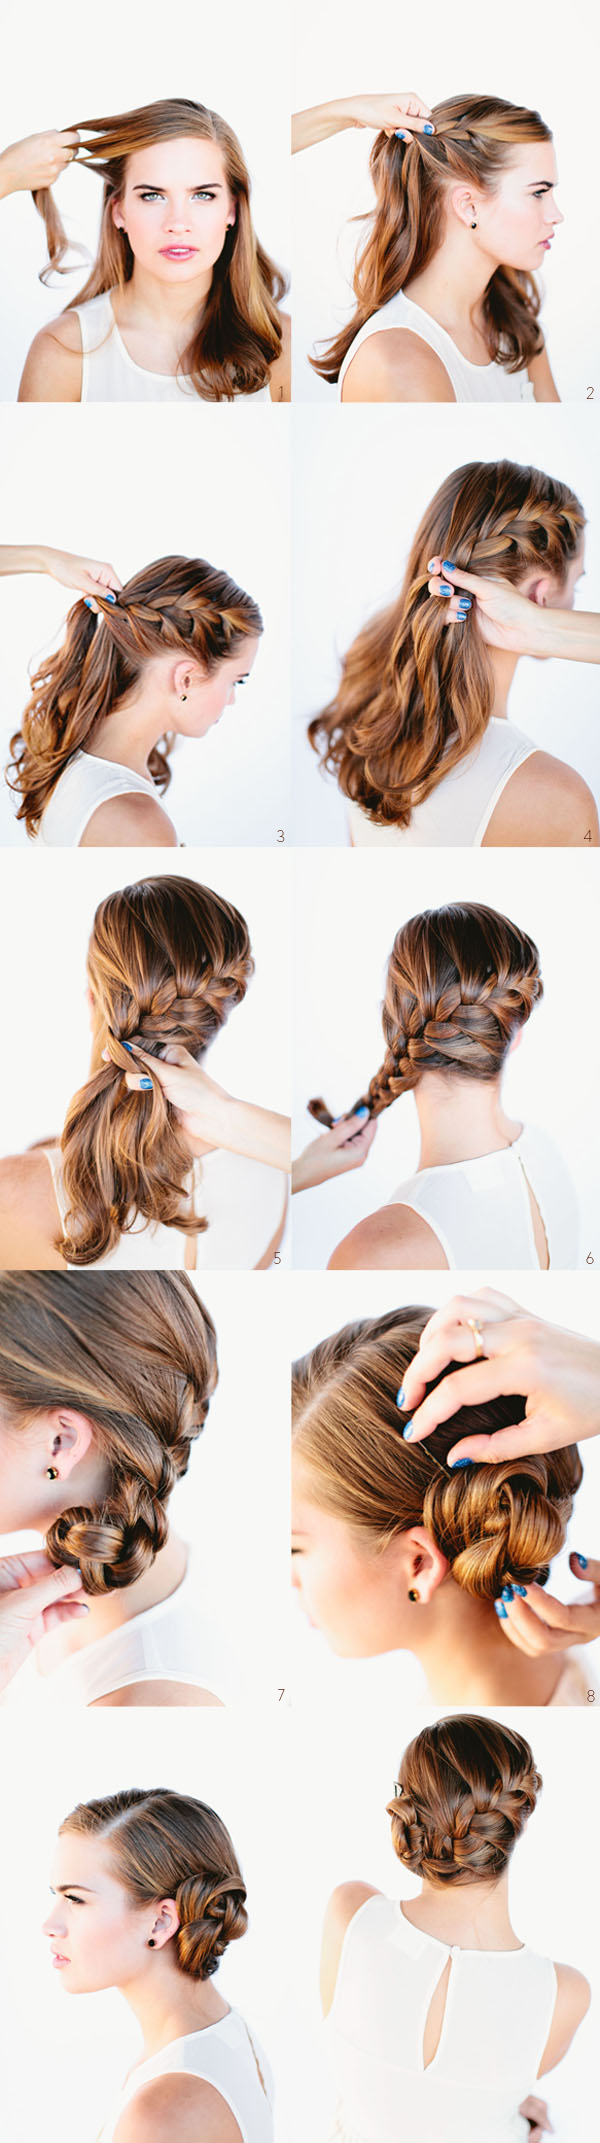 40 Simple and Fast Hairstyles For All Hair Types New Hairstyle Trends